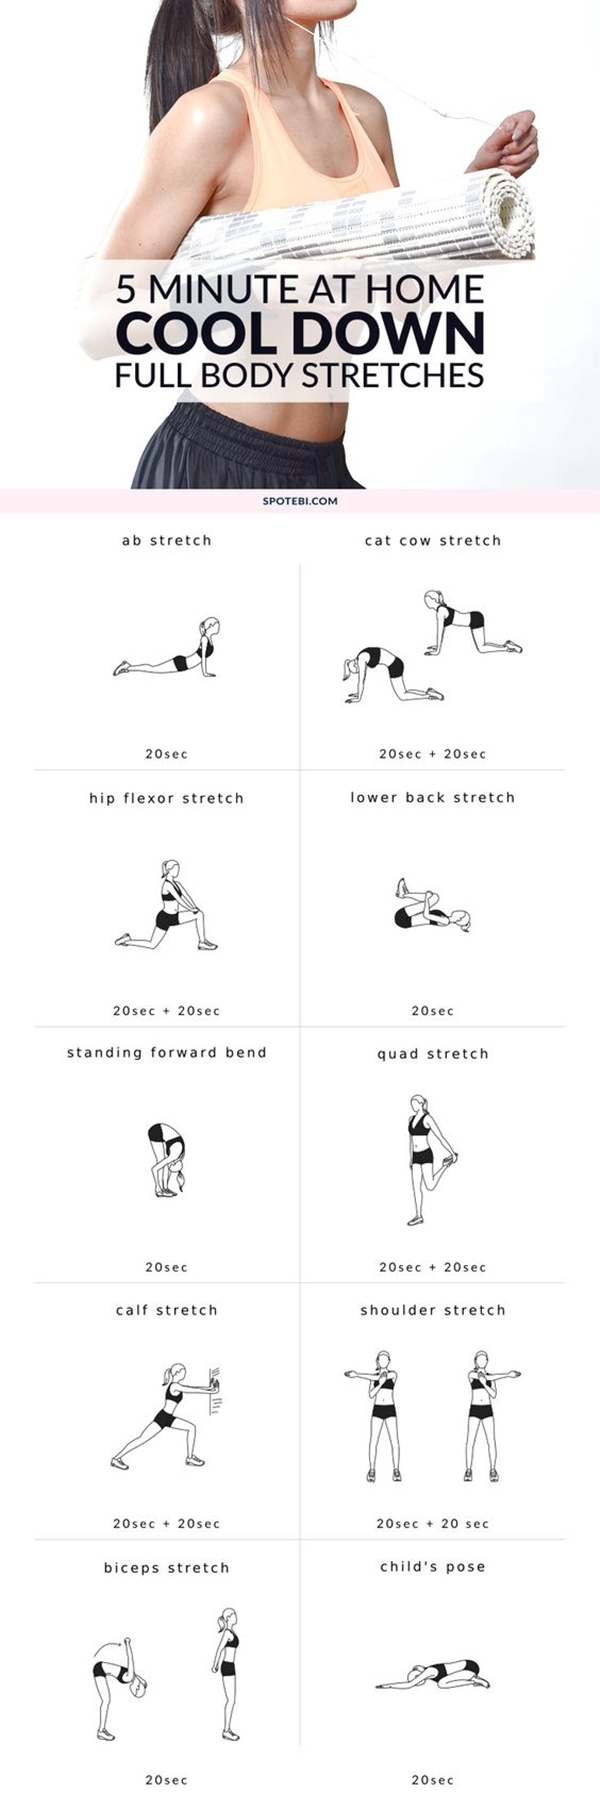 charts-post-workout-stretches-prevent-injuries